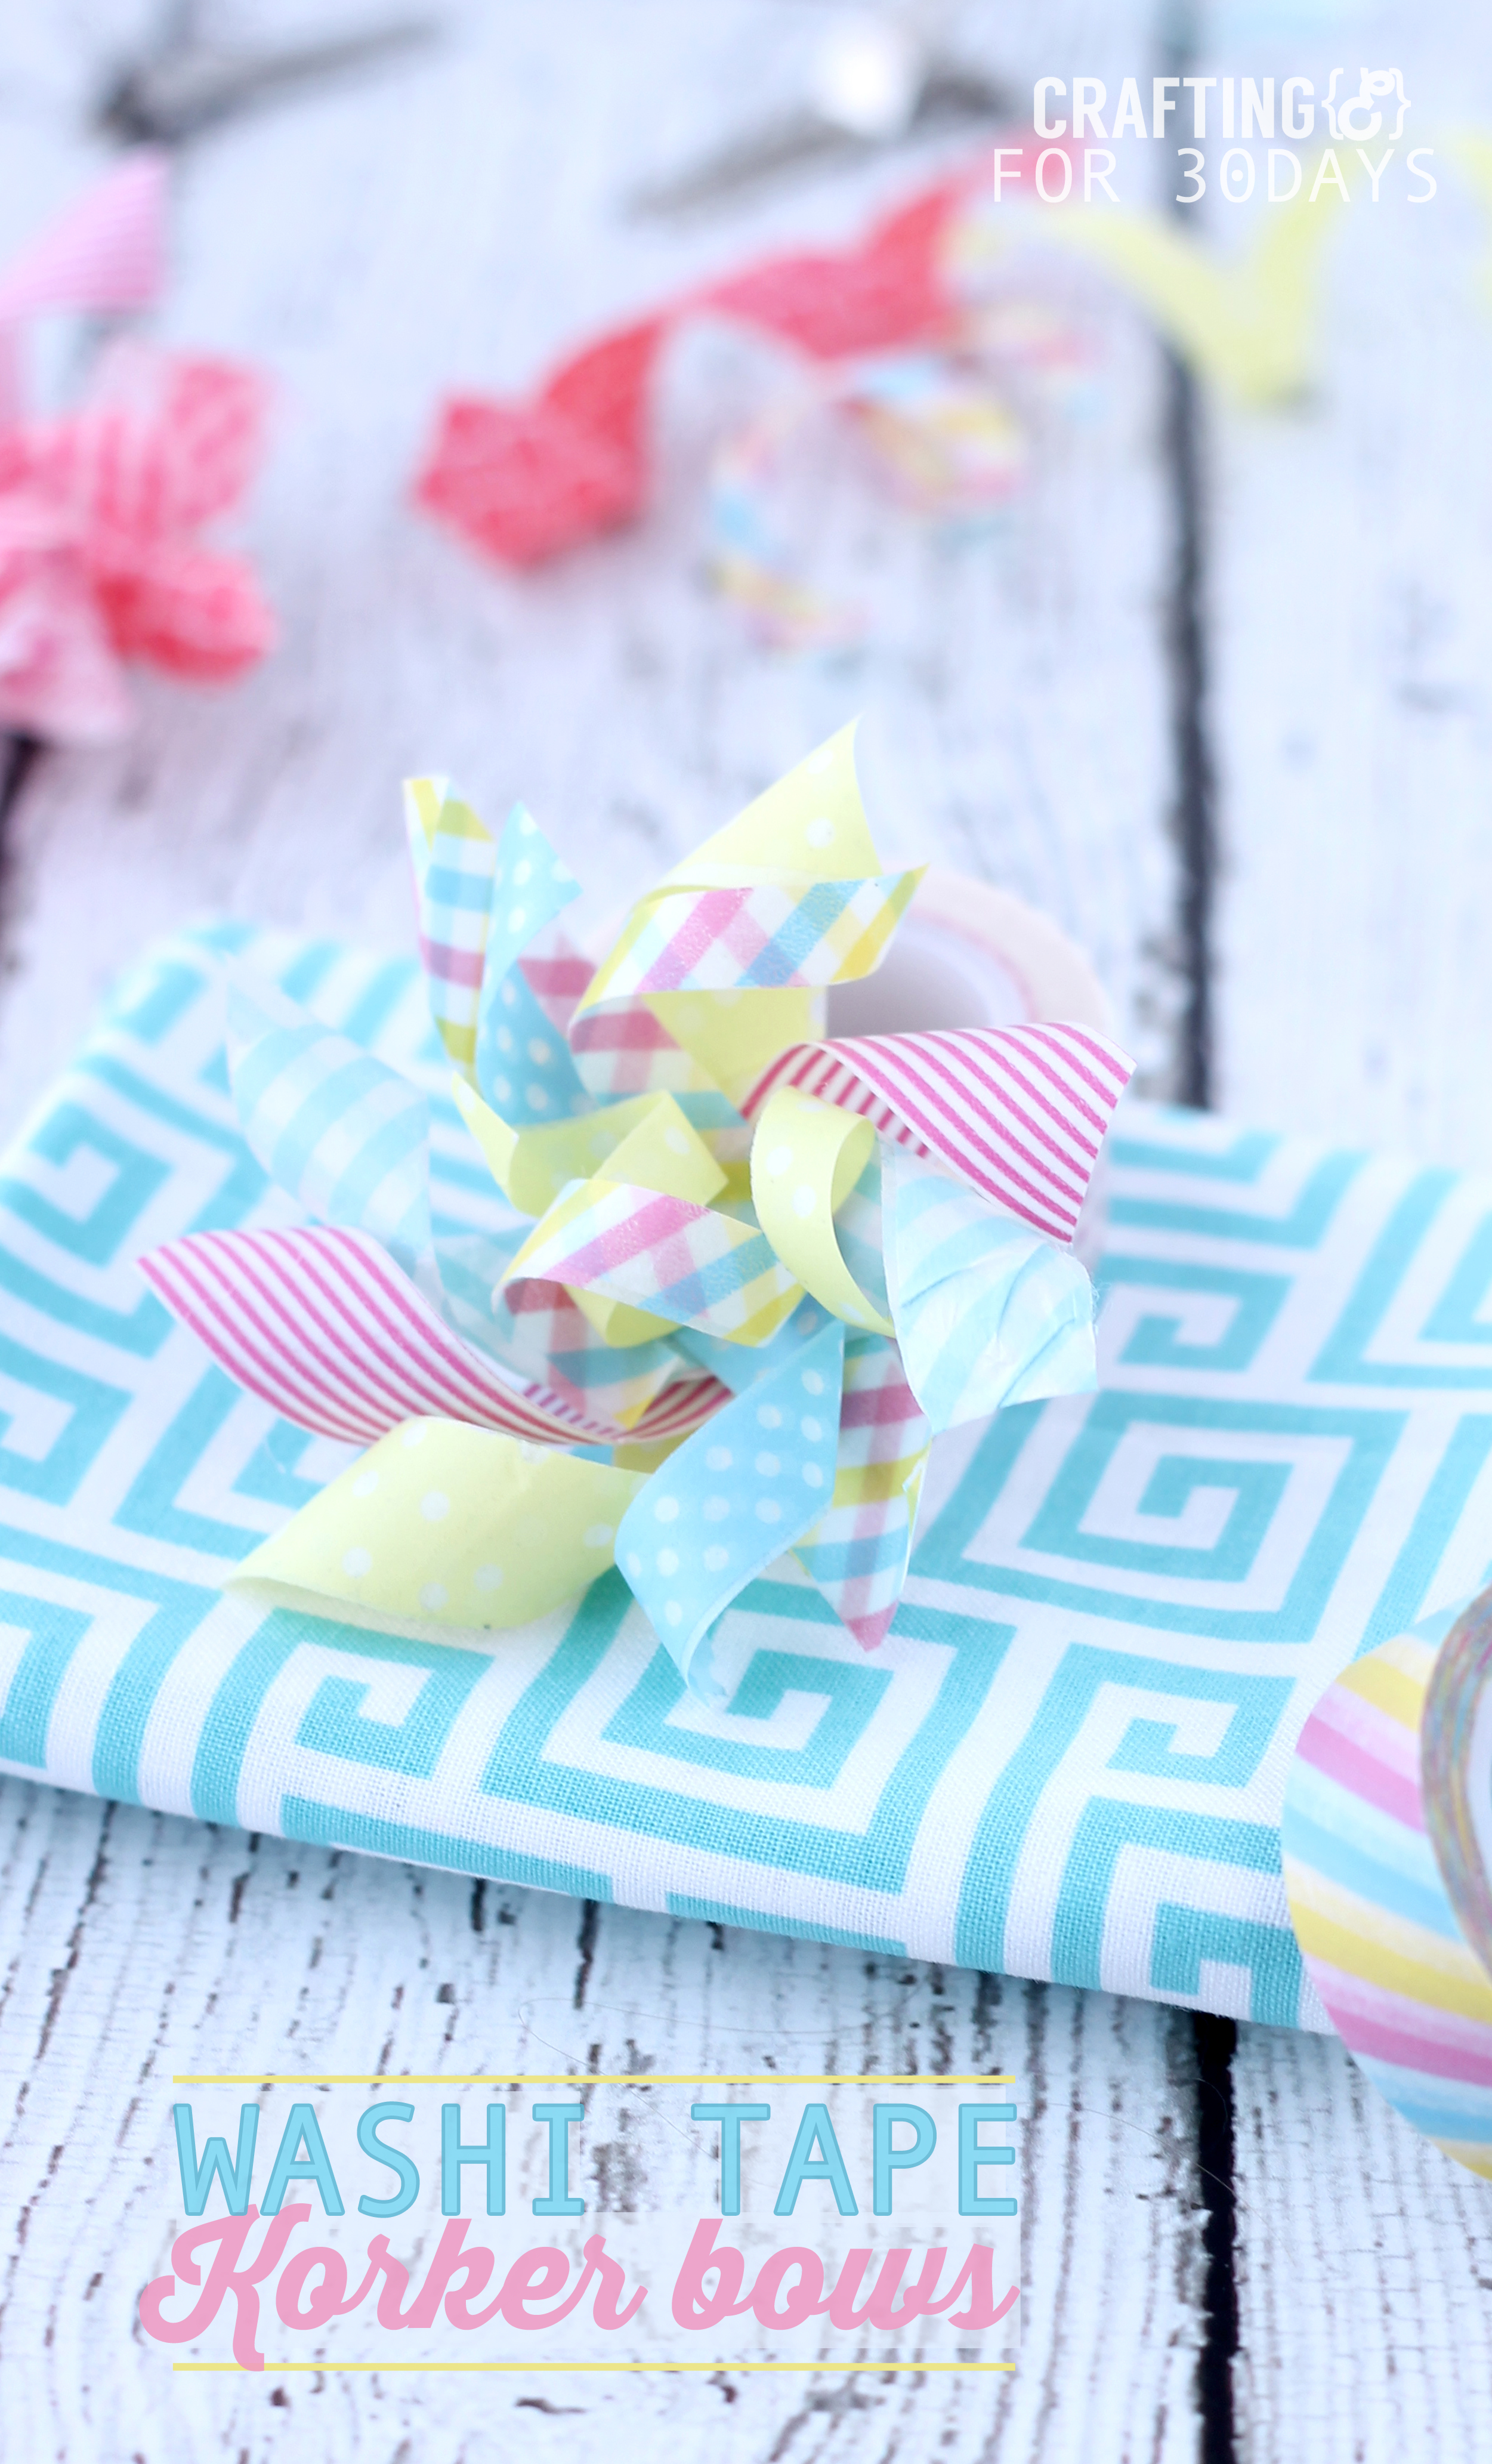 How to make washi tape korker bows!